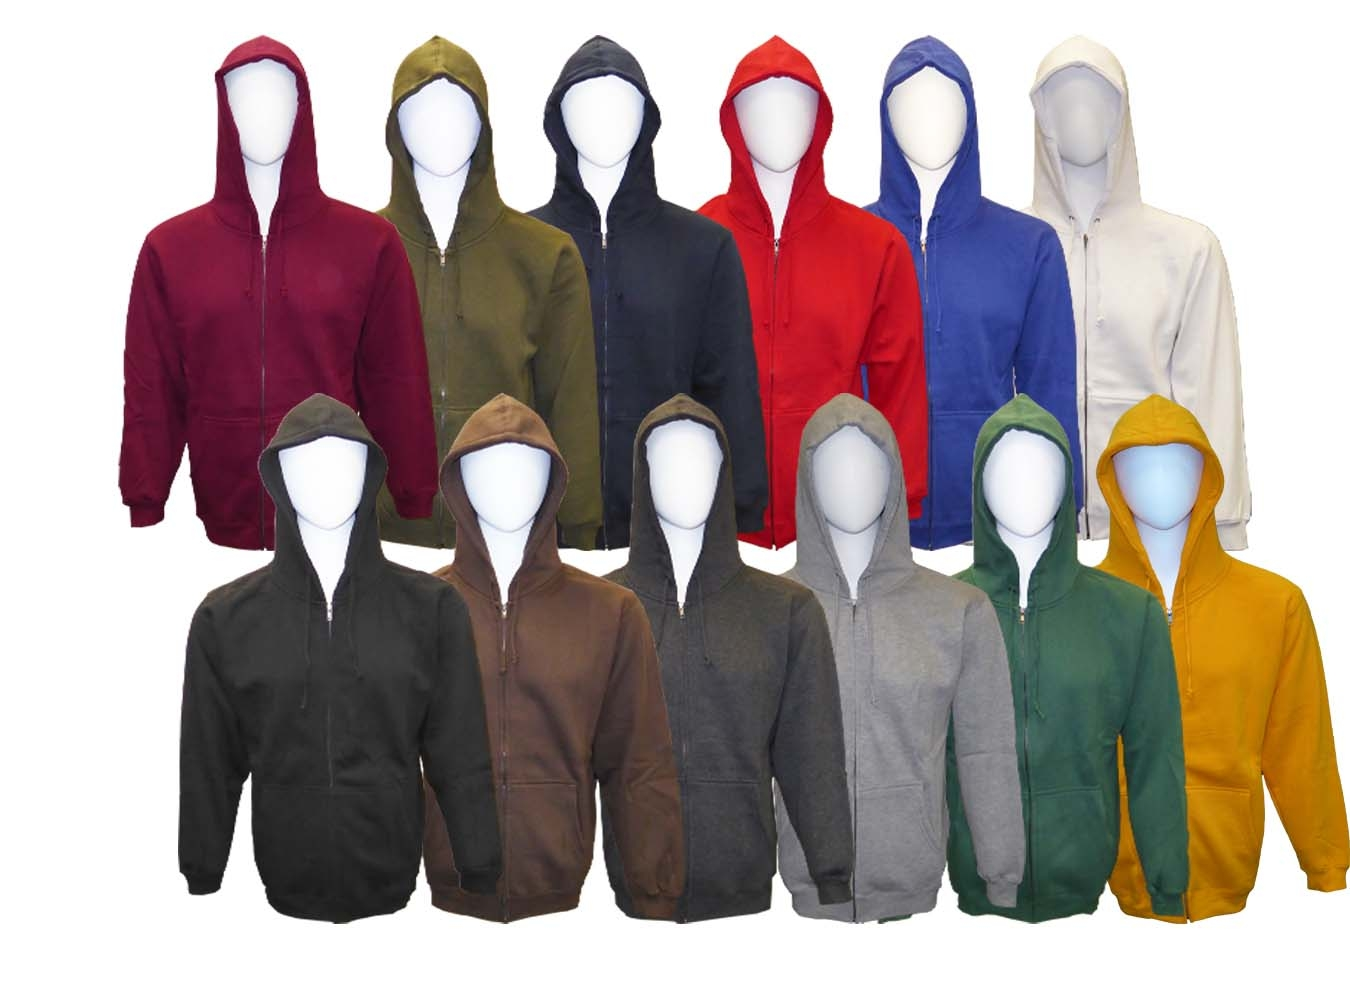 Adult Hooded Full Covered Zipper Fleece Sweatshirt Jacket